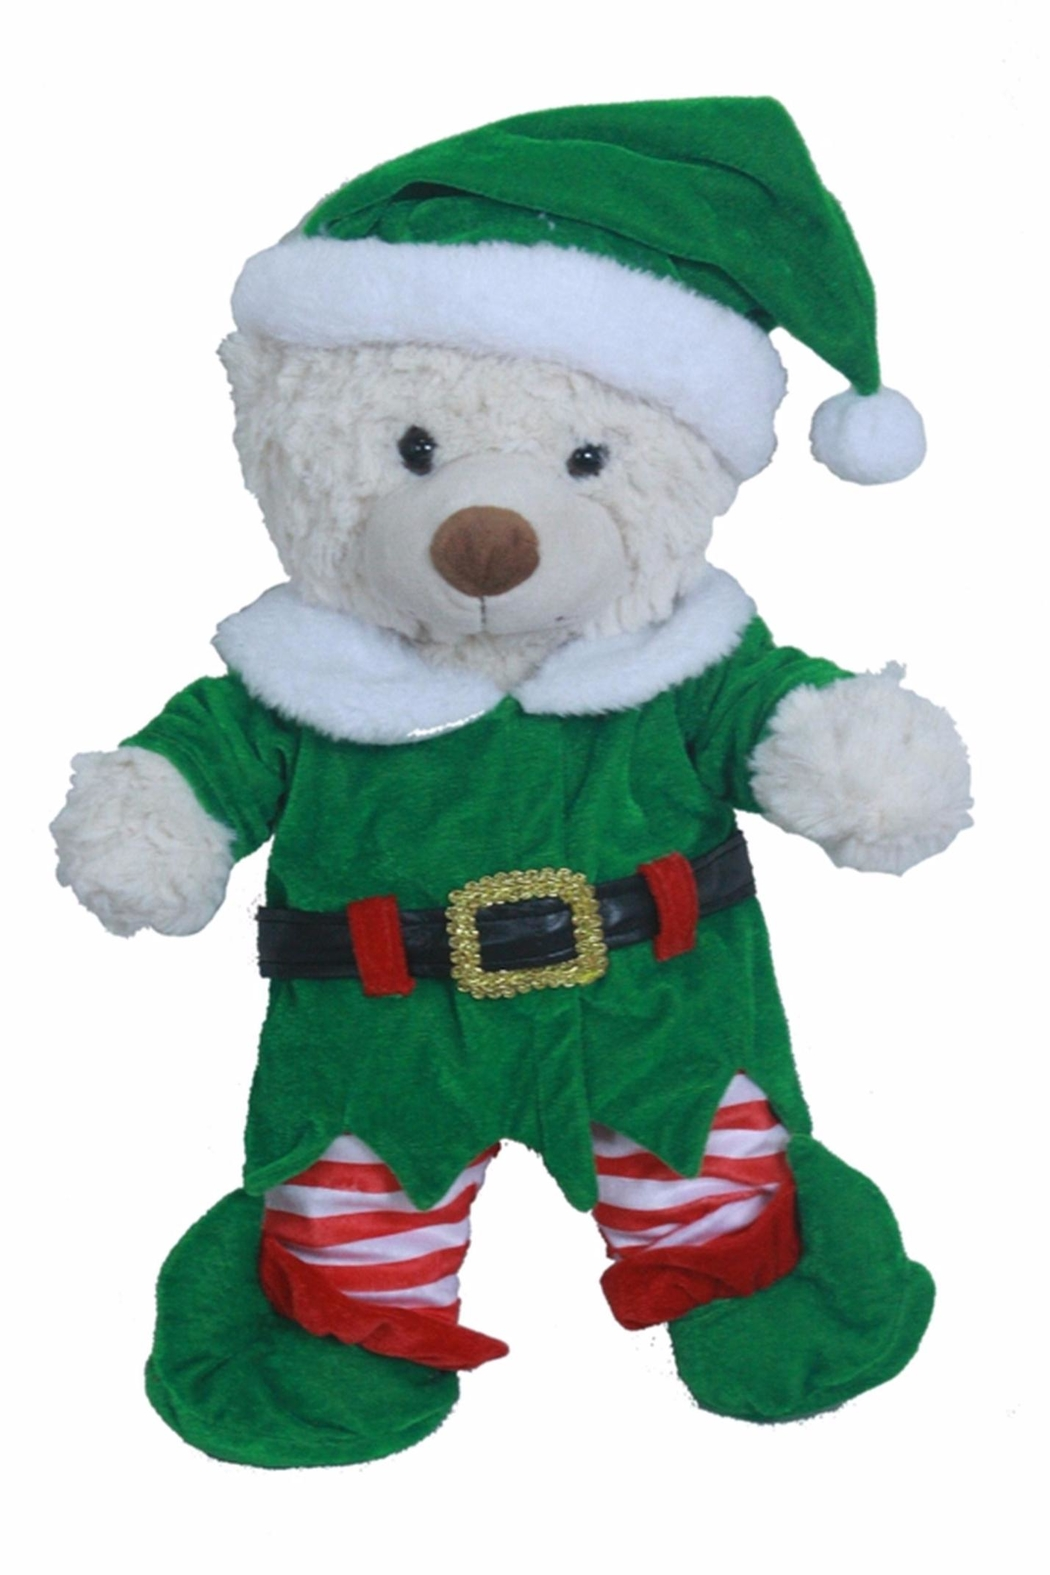 Cuddles and Friends Teddy Elf Costume - Main Image